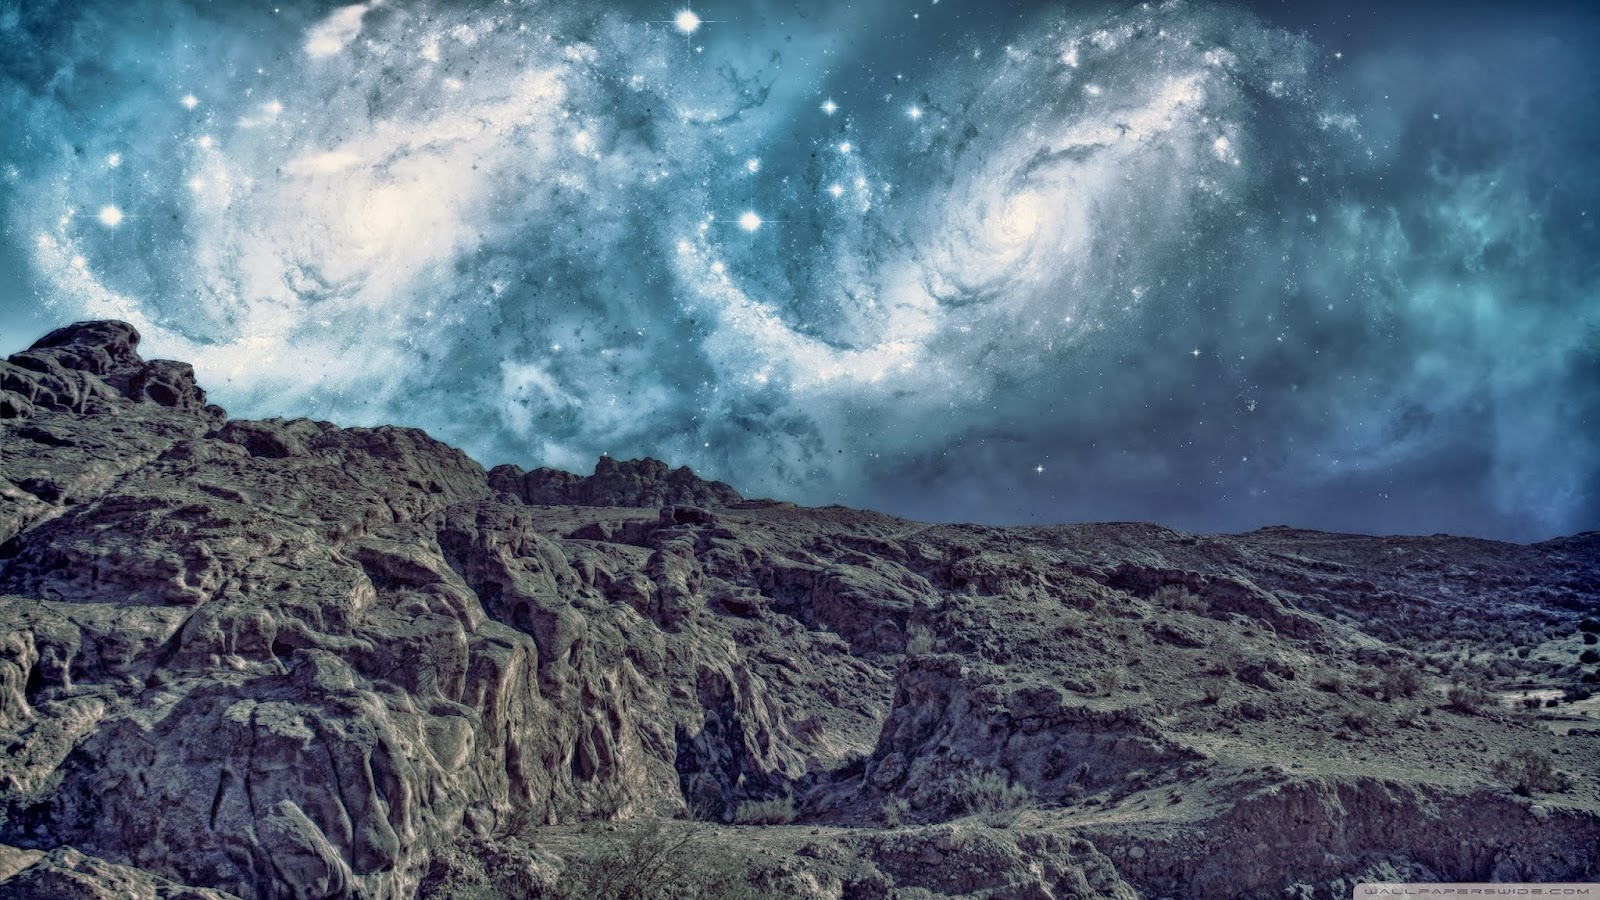 Wallpapers world mountains space hd wallpaper 2560 x 1440 - Space 2560 x 1440 ...